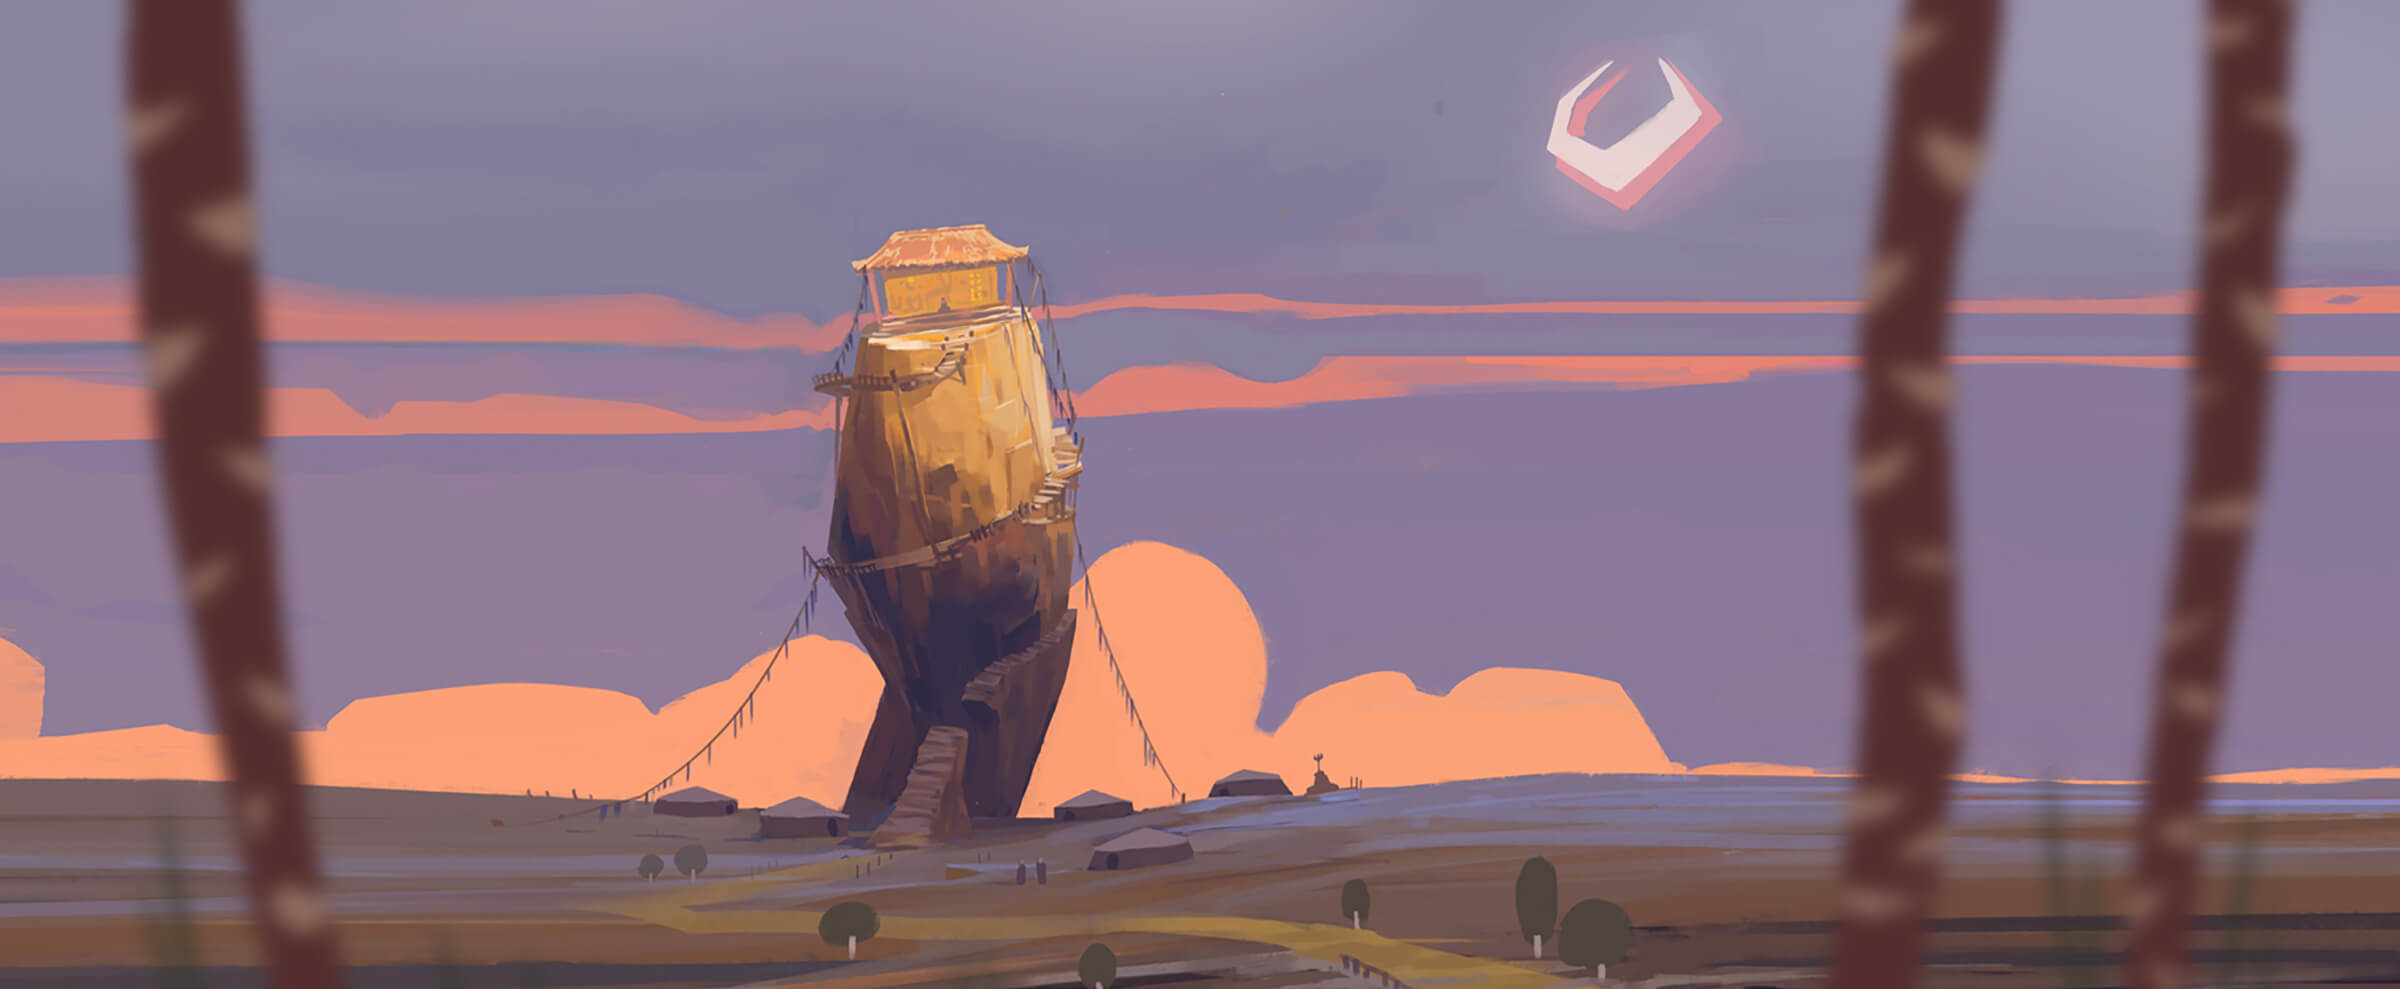 Stylized desert-like landscape in pastel colors. A ramshackle hut sits atop a tilted rock outcropping surrounded by tents.